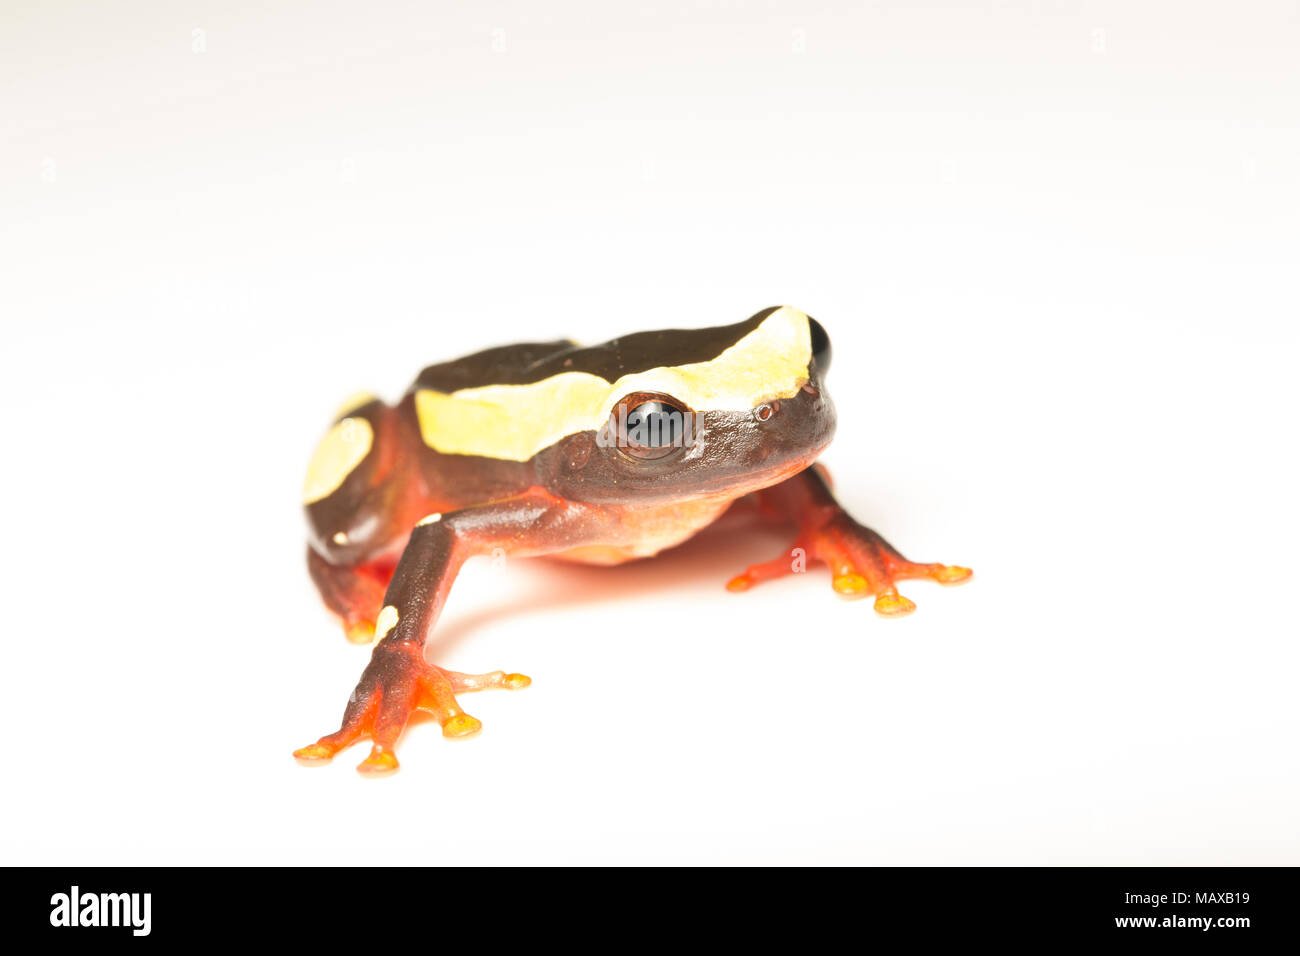 A clown tree frog, Dendropsophus leucophyllatus, on a white background, photographed near Bakhuis in the jungles of Suriname, South America. - Stock Image